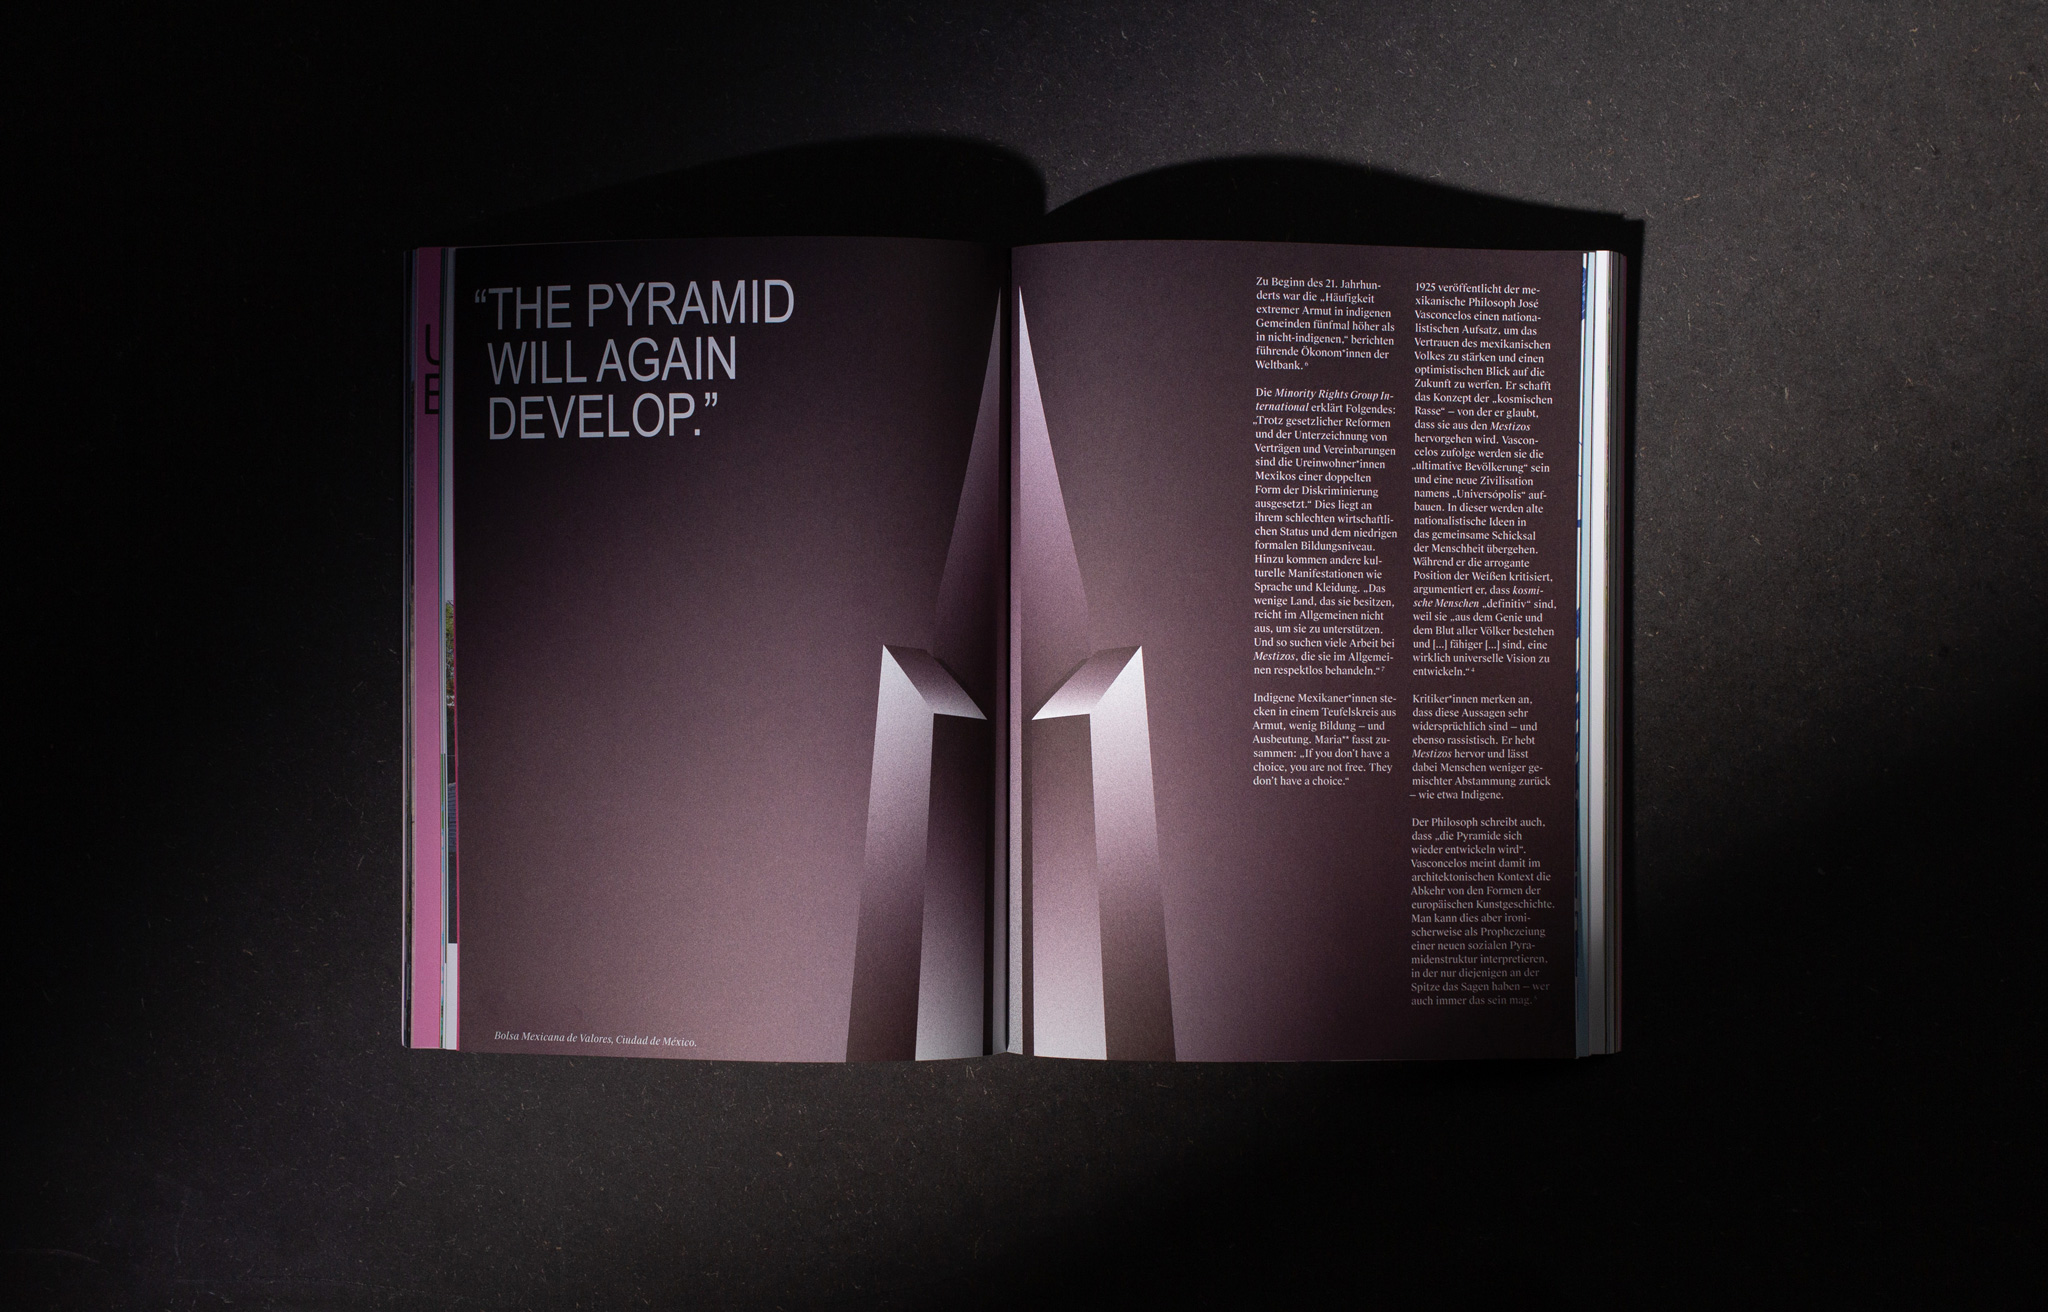 """The pyramid will again develop."" — third spread"